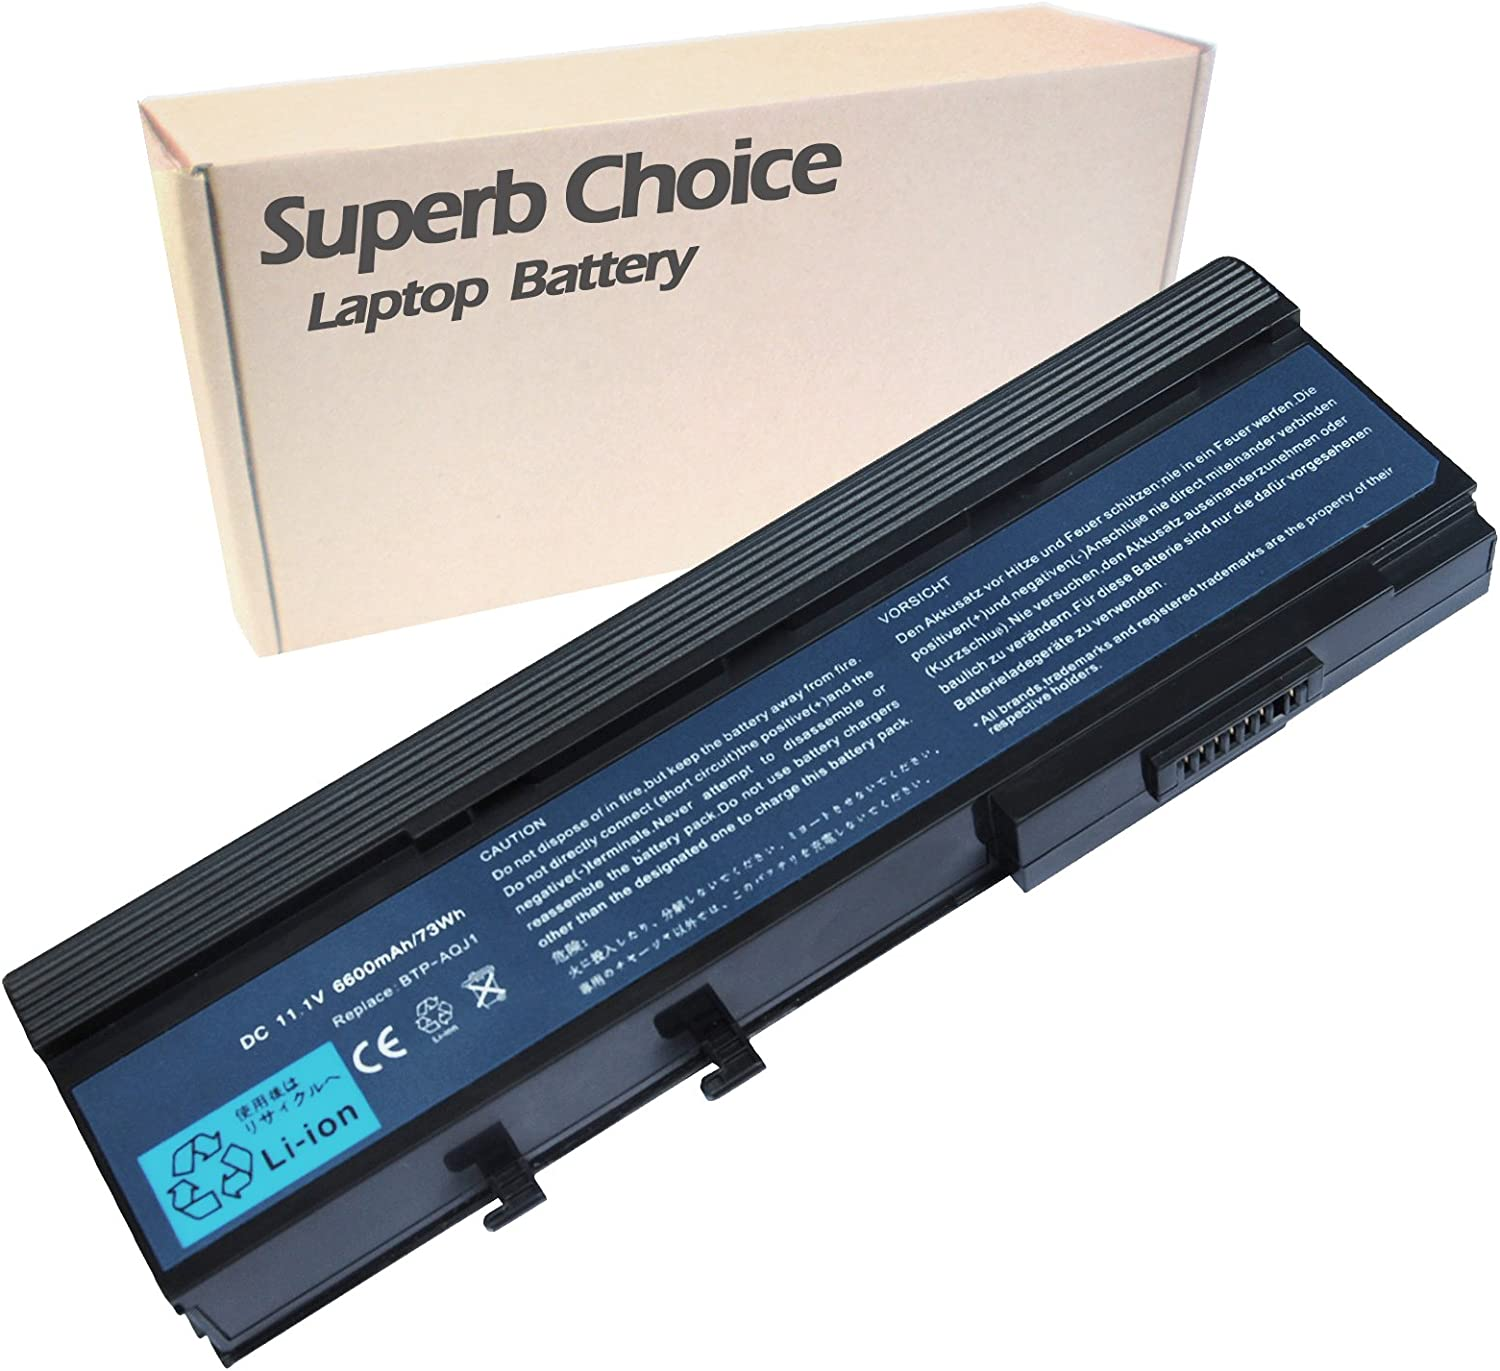 Superb Choice 9-Cell Battery Compatible with TravelMate 6292-101G16N 6292-102G16N 6292-301G16MN 6292-301G16N 6292-302G16Mi 6292-302G16Mn 6292-302G16N 6292-602G16Mn 6292-602G25Mn 6292-6700.